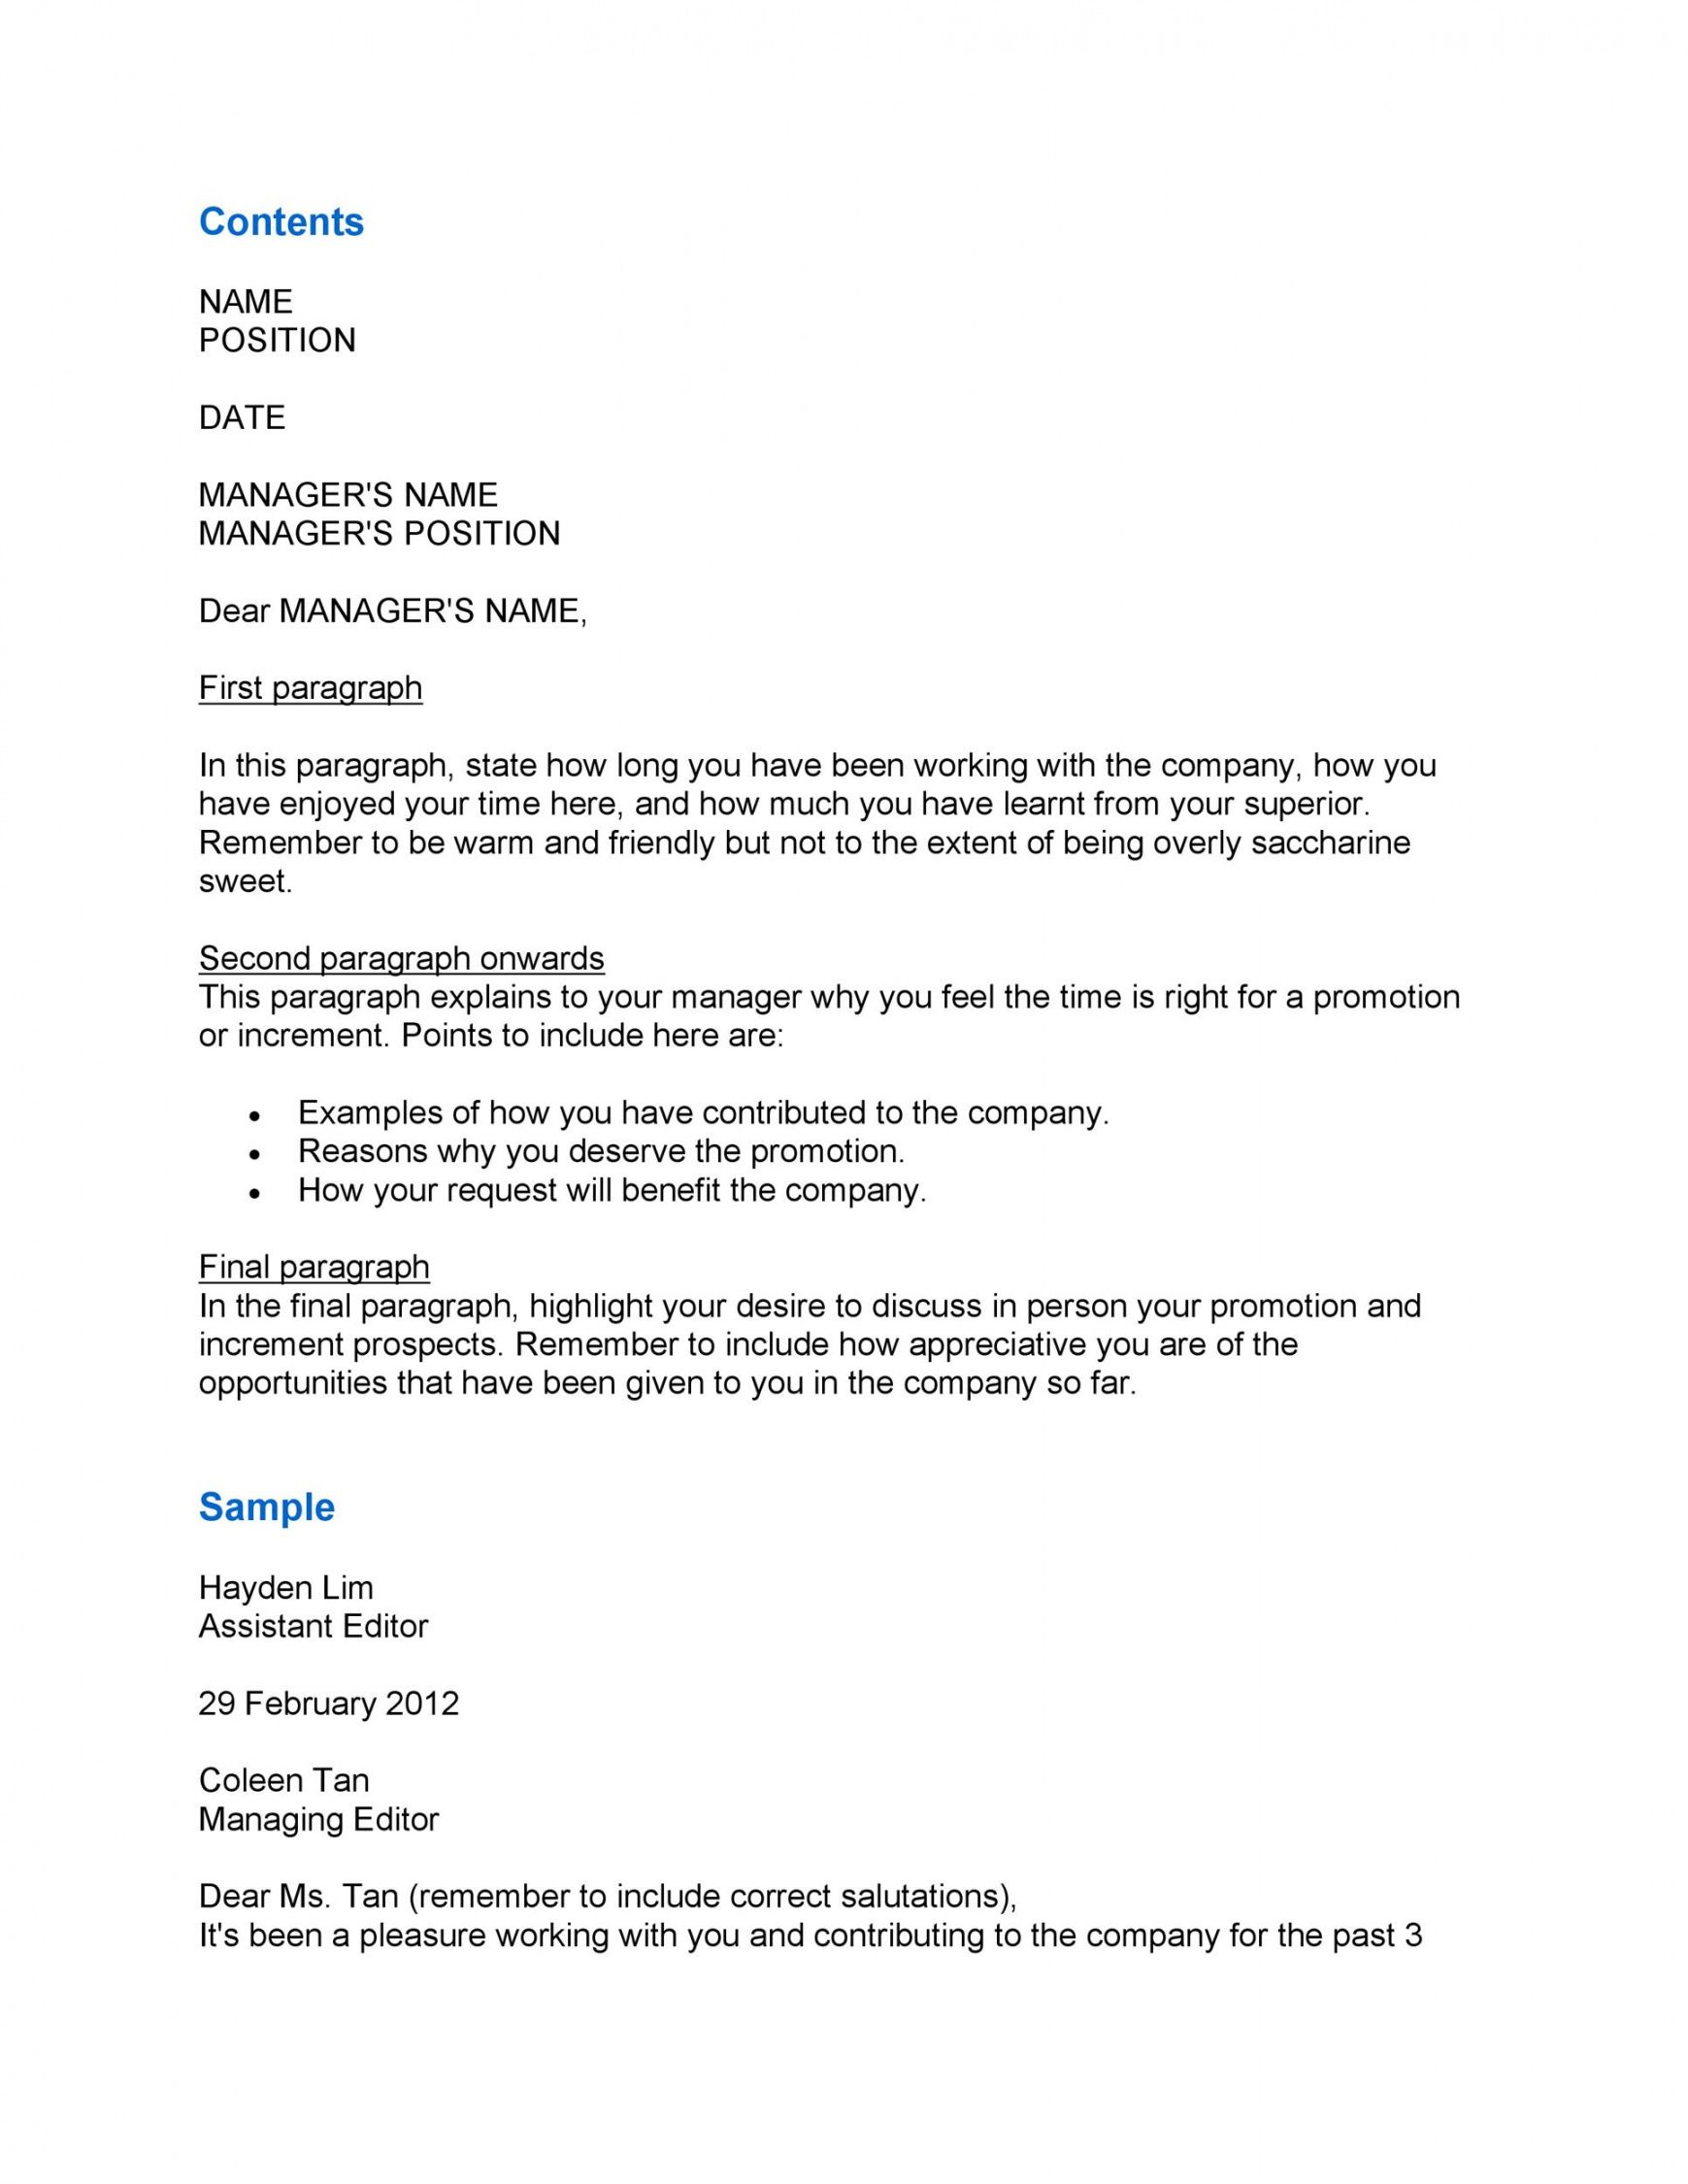 free 50 best salary increase letters how to ask for a raise? pay raise proposal template